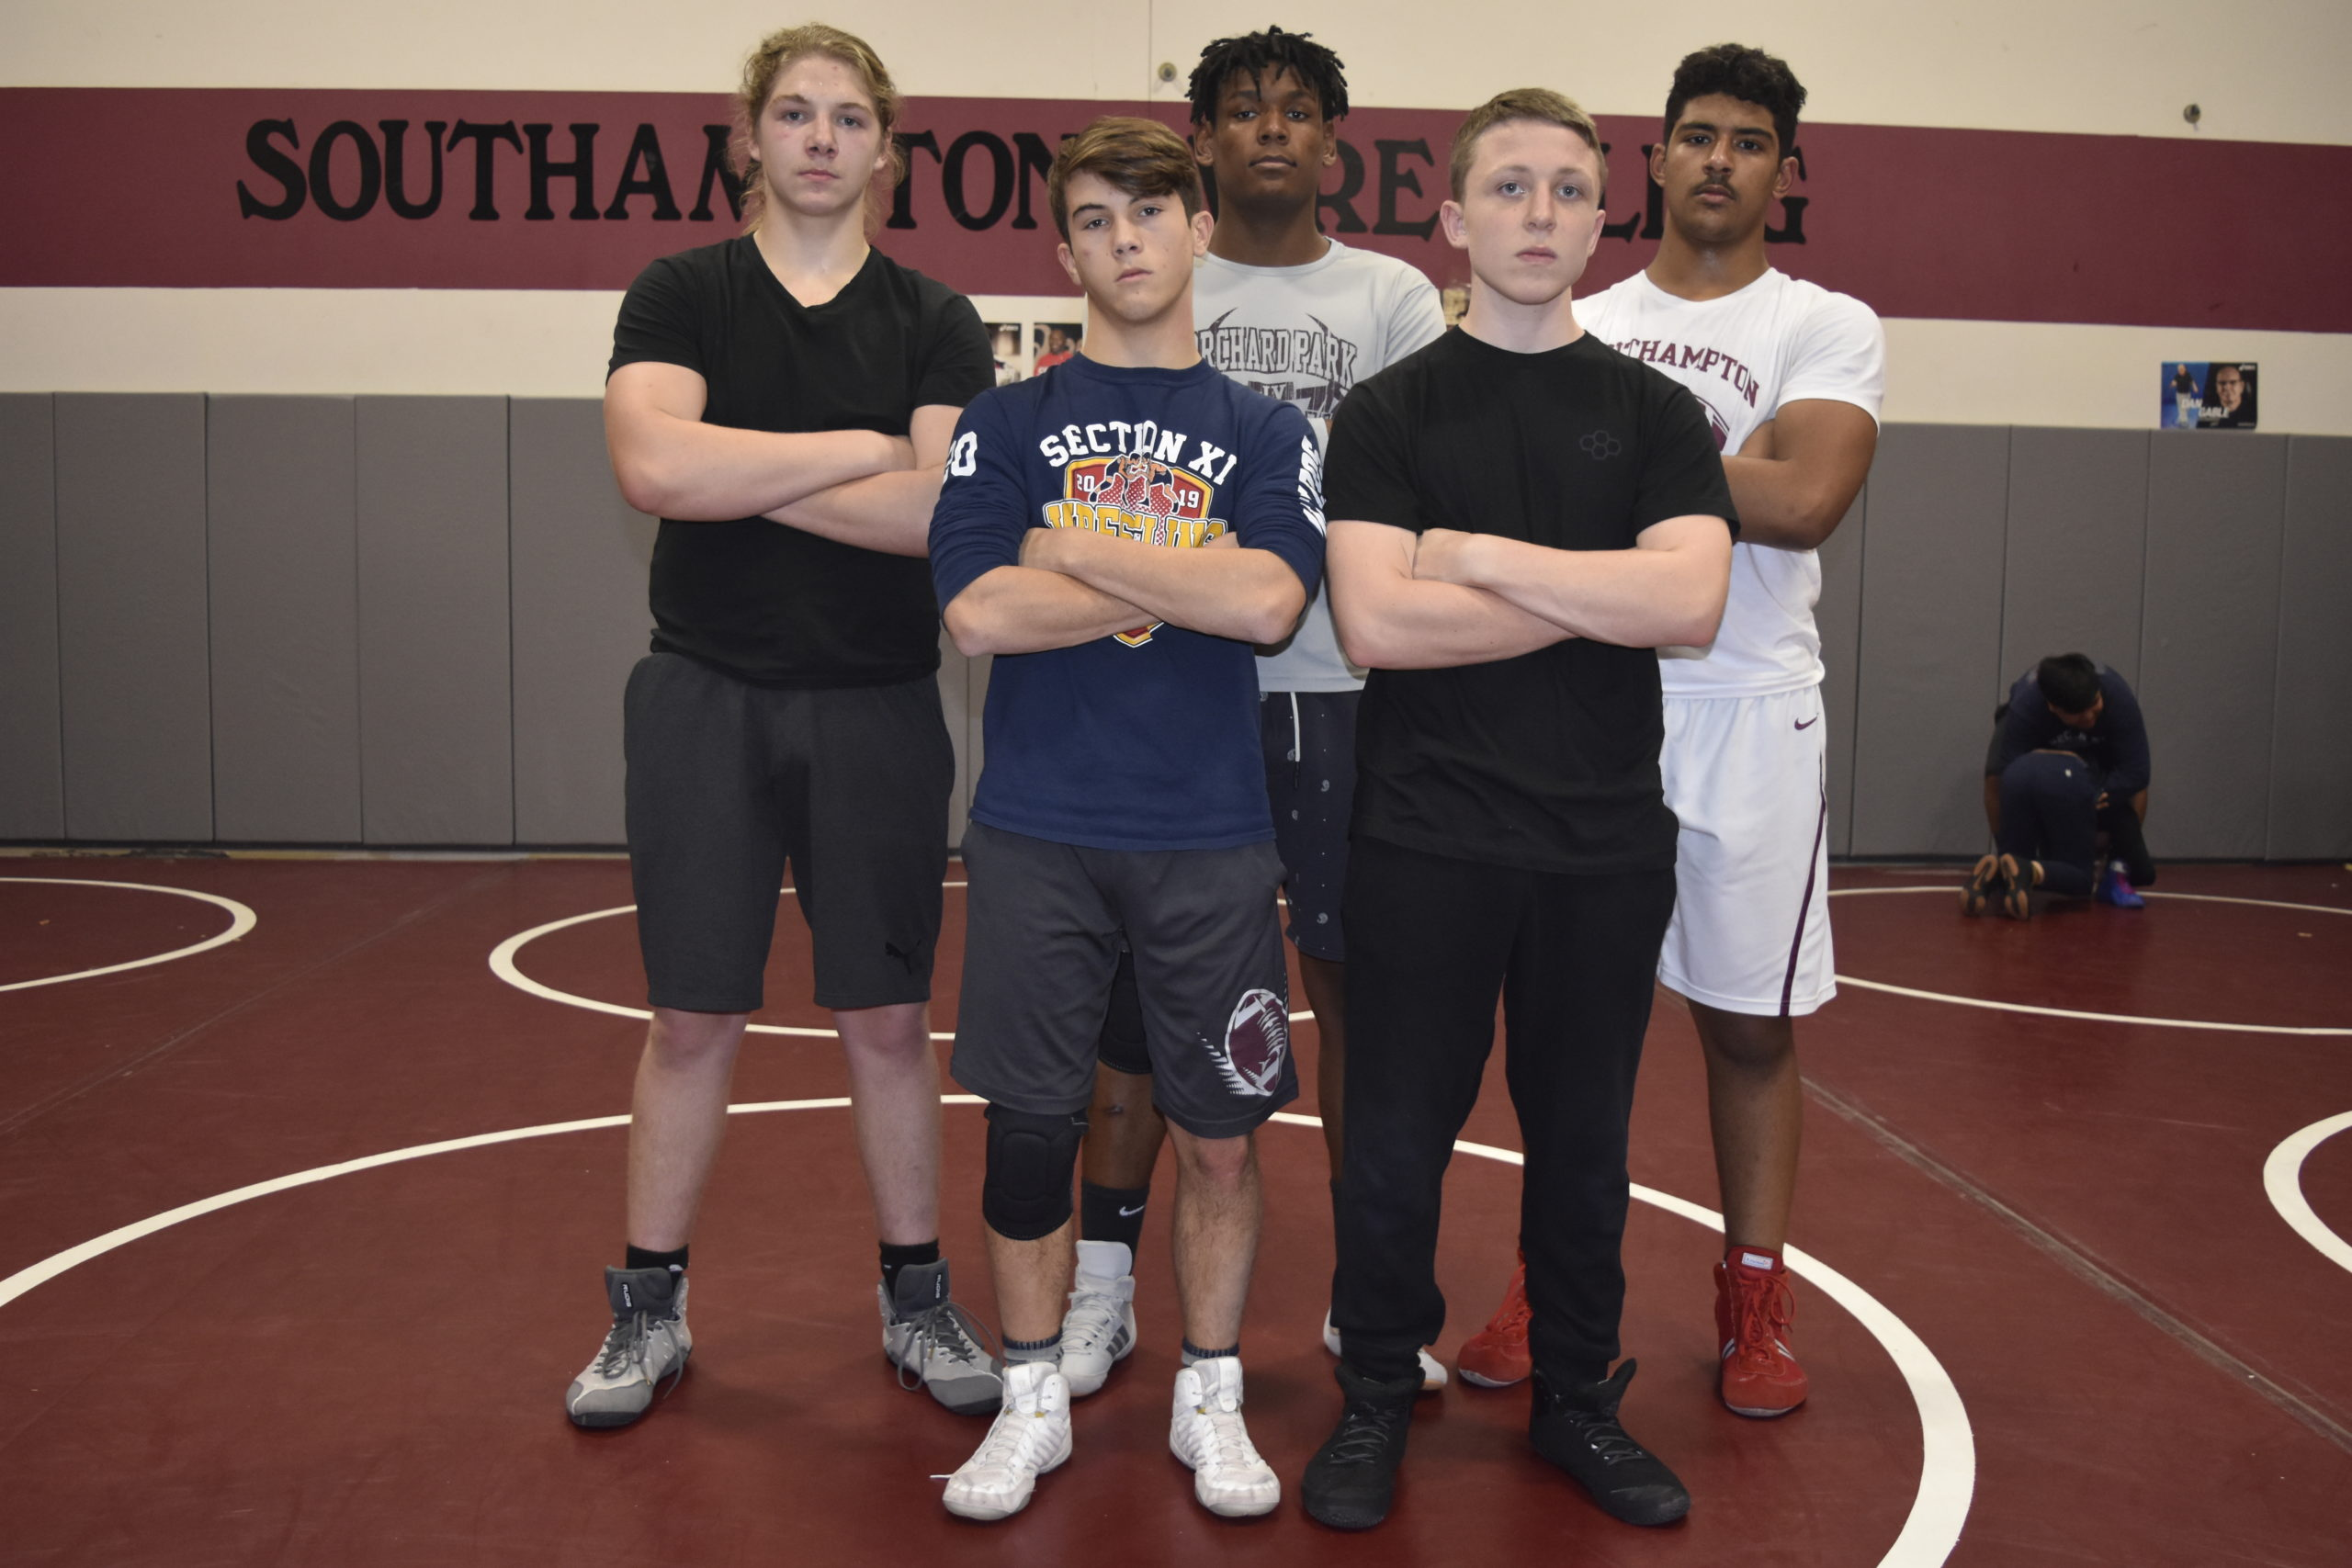 Key returning wrestlers for the Mariners this season include, from top left, Bradley Bockhaus, Ben Brown, Zayden Michel, and from bottom left, Alex Boyd and Riley Lenahan.